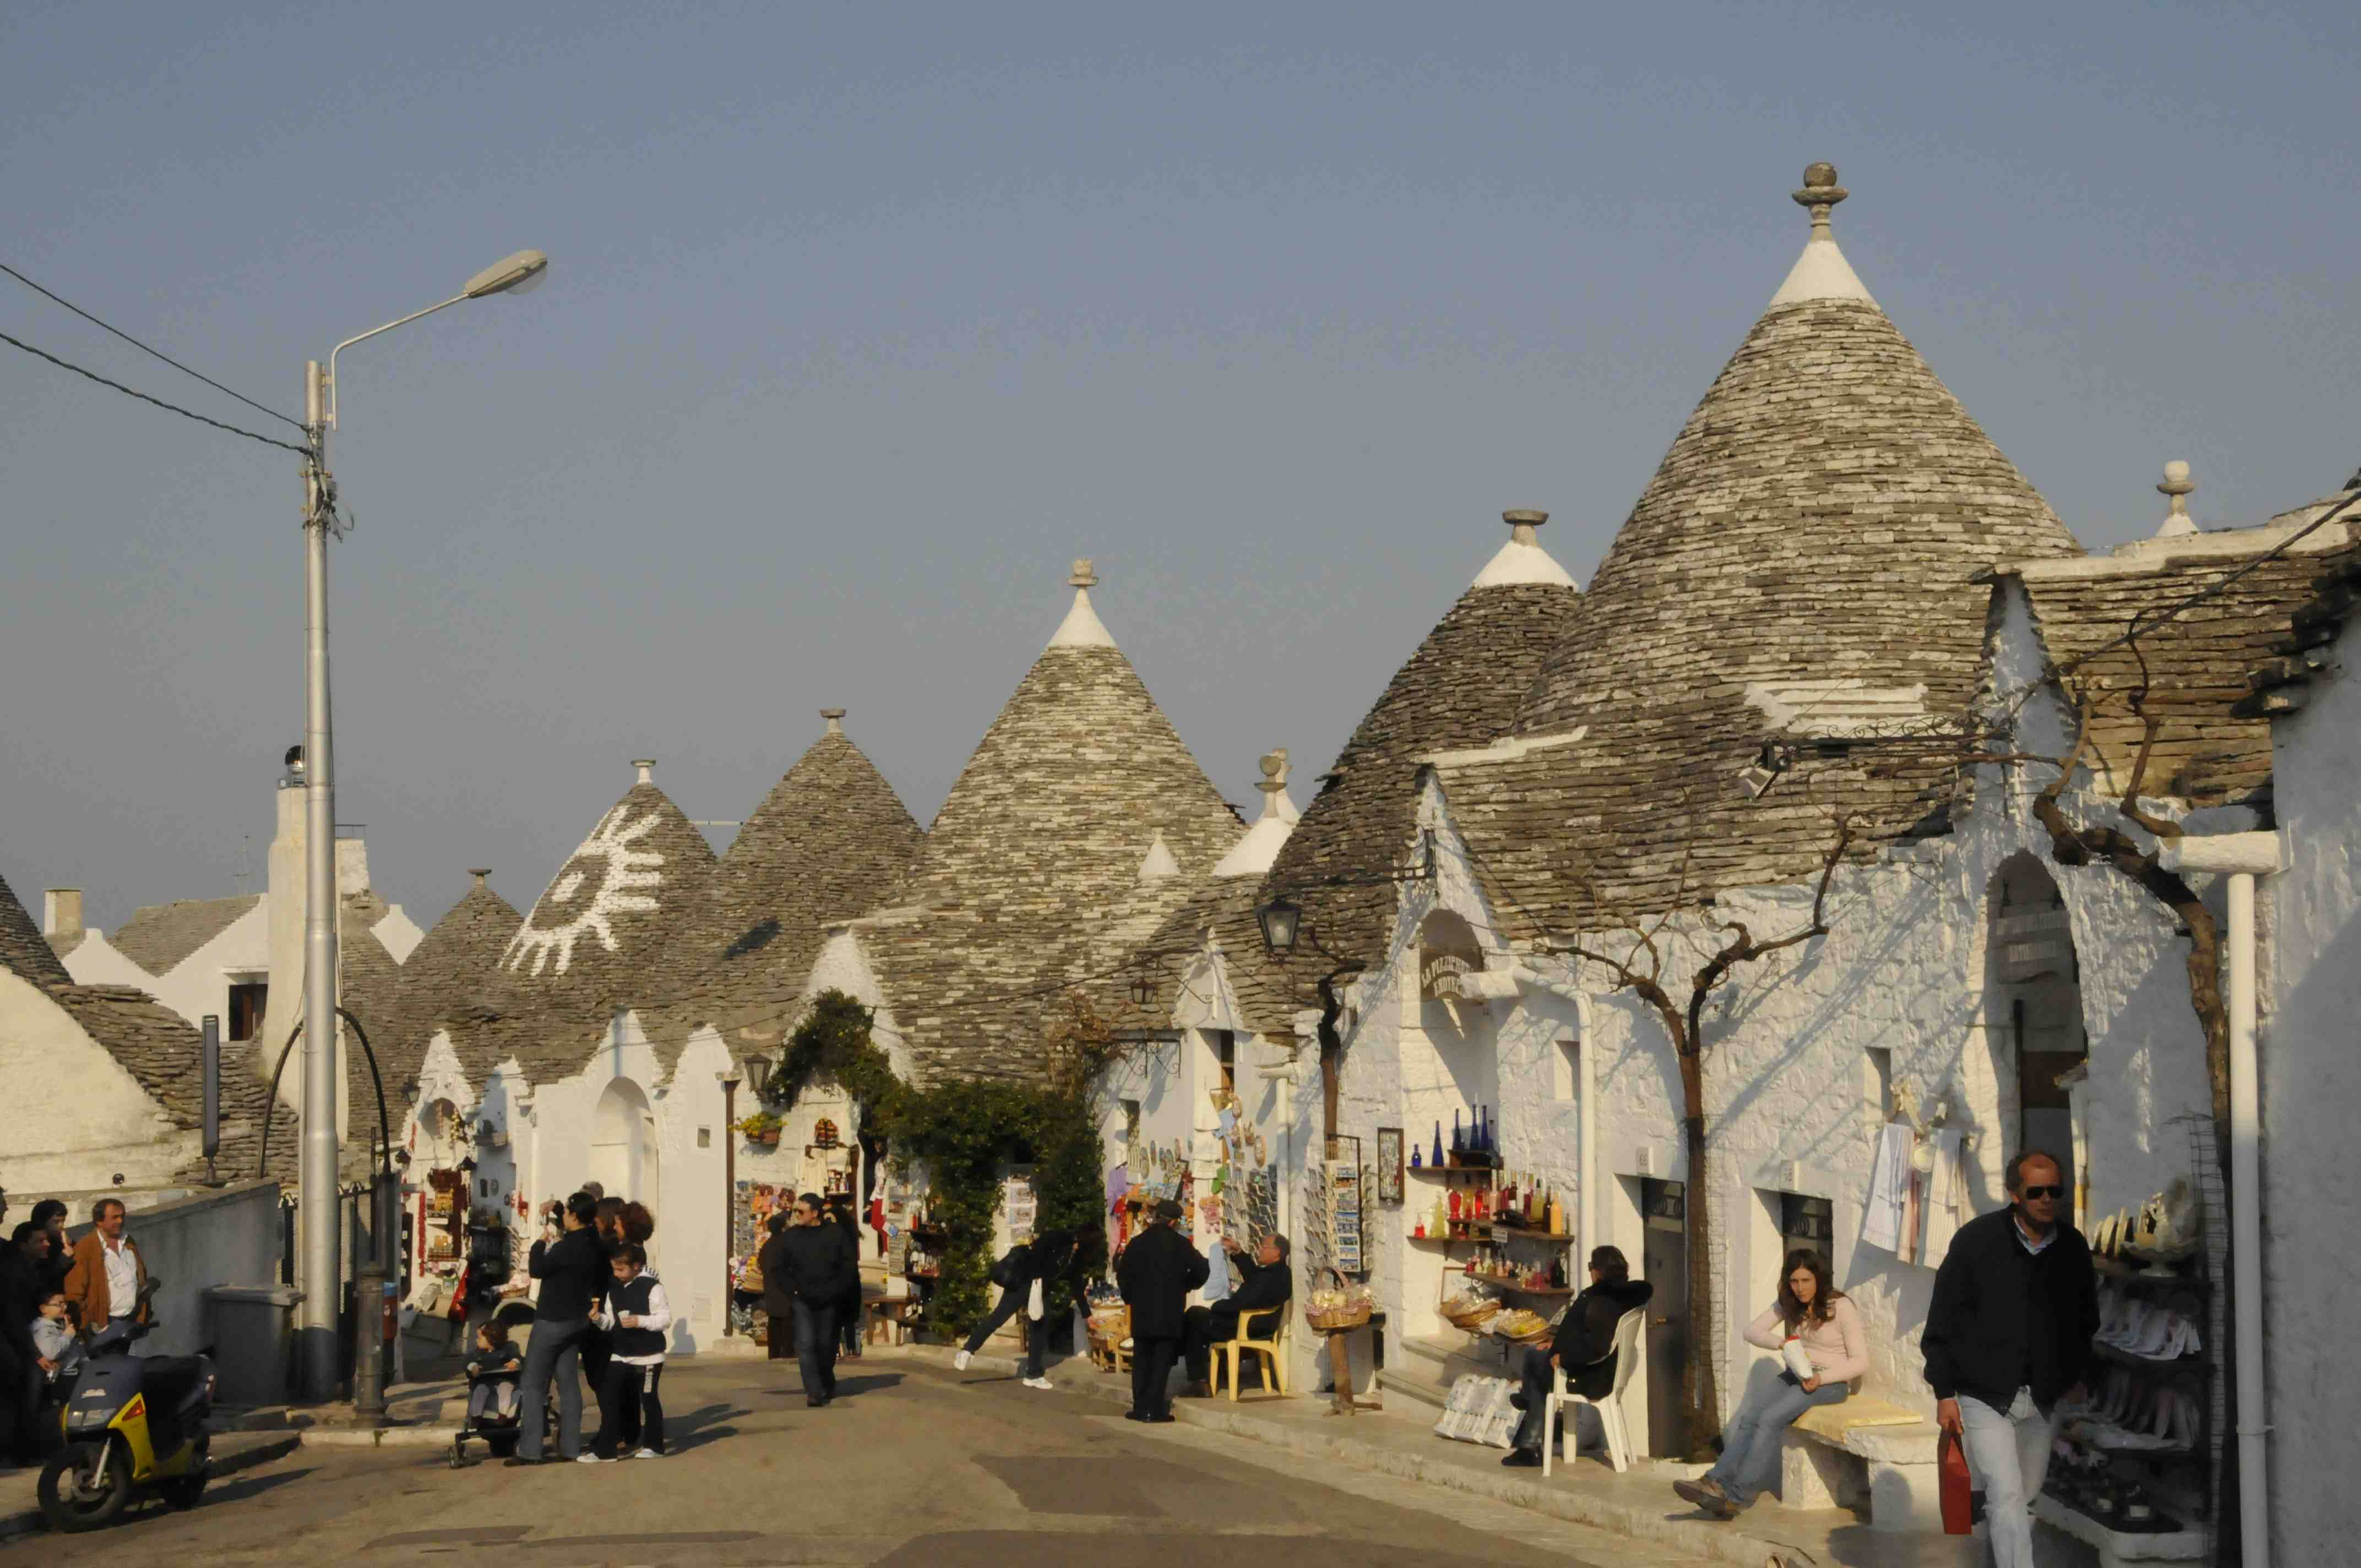 Visiting the historical trulli of alberobello italy europe up close